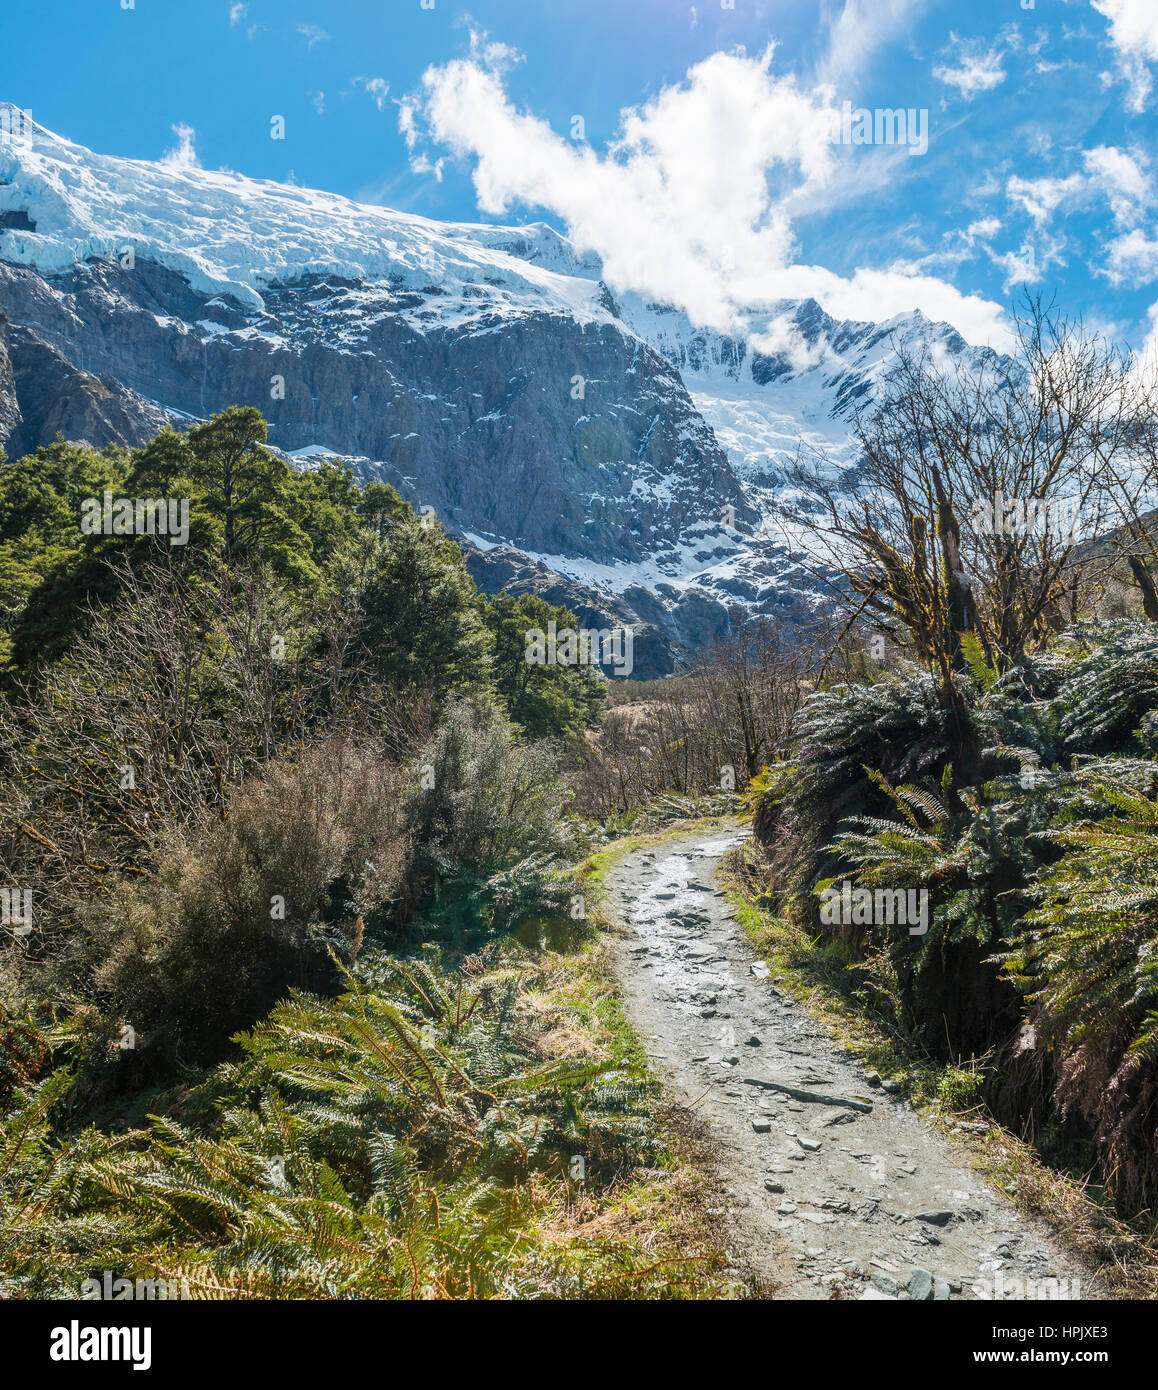 Hiking trail, Rob Roy Glacier, Mount Aspiring National Park, Otago, Southland, New Zealand Stock Photo